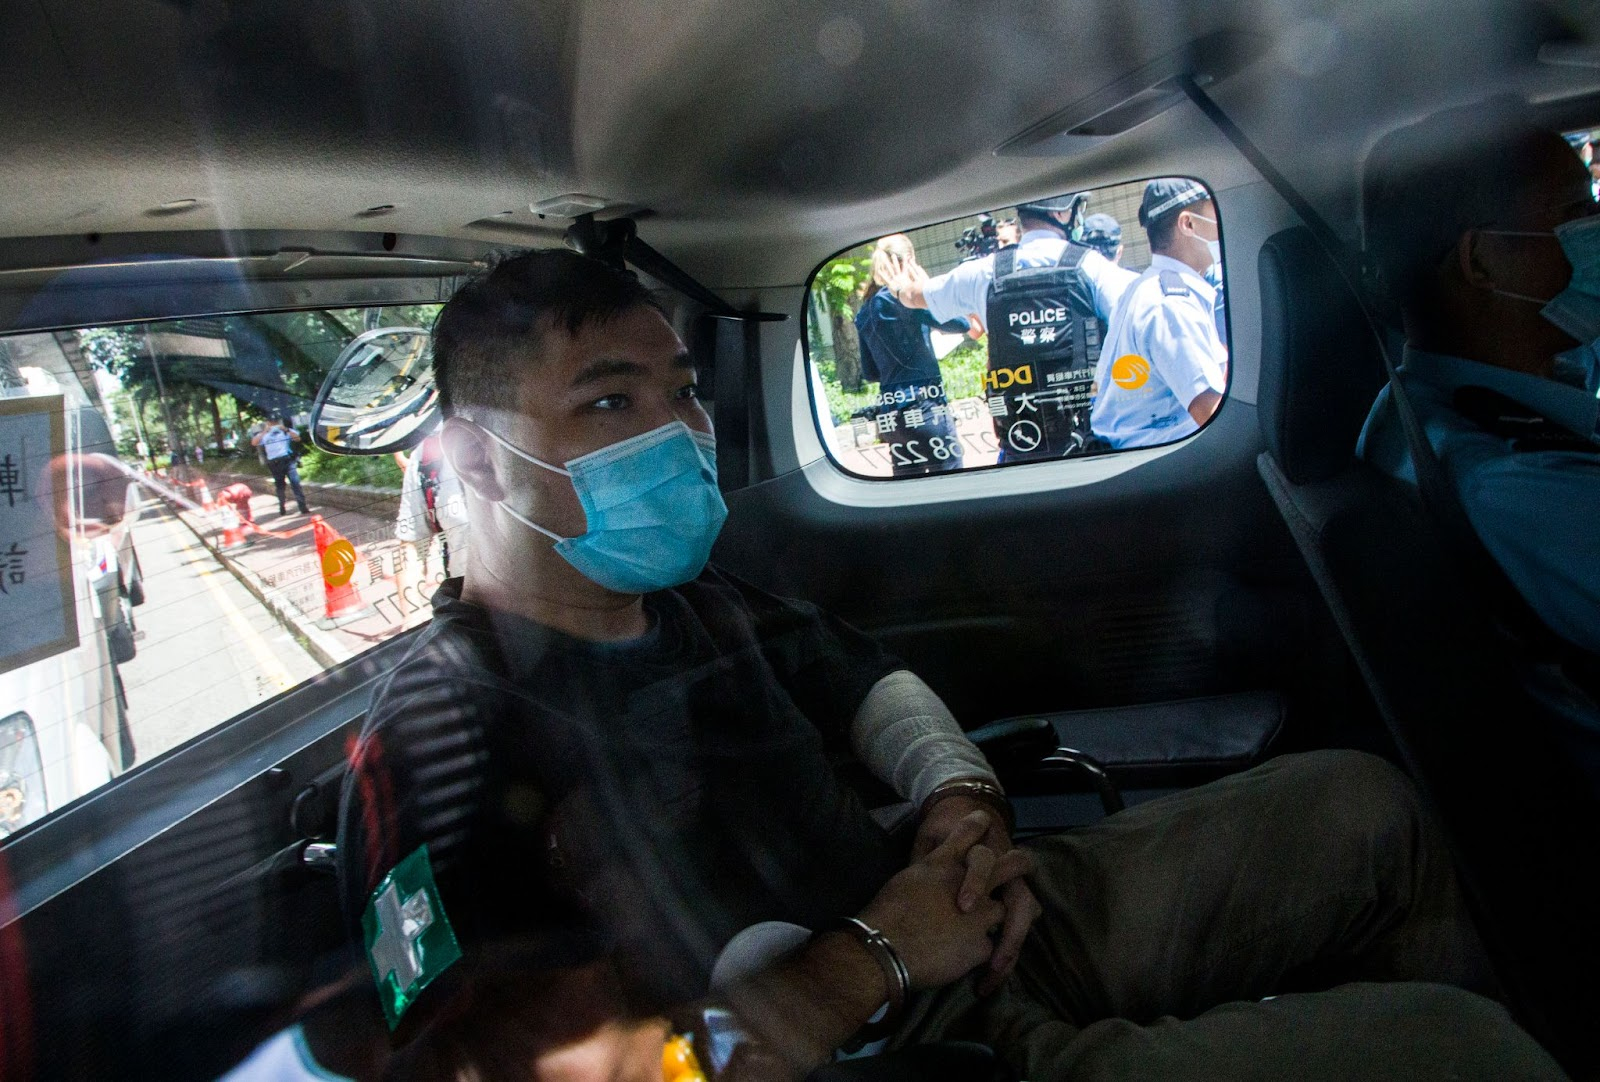 """Defendant Tong Ying-Kit, 24, arrives at court after being accused of deliberately driving his motorcycle into a group of police officers on July 6, 2020 in Hong Kong. Tong is the first person to be charged for """"incitement to secession"""" and """"terrorist activities"""" under the Hong Kong National Security Law."""